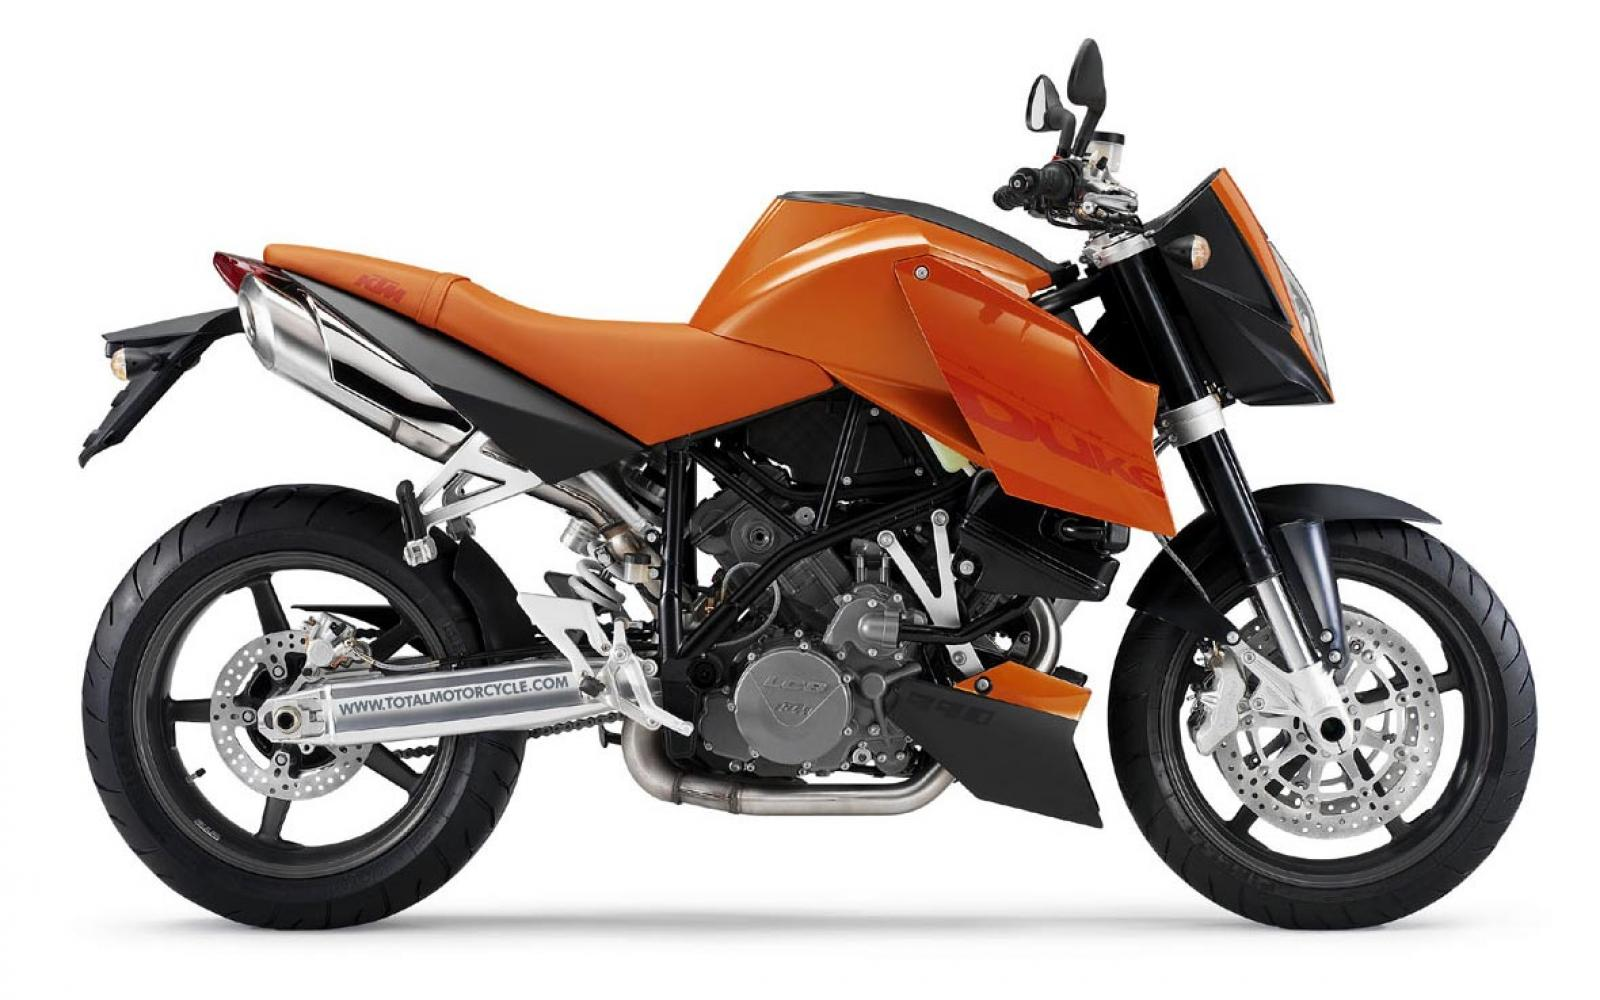 ktm ktm 990 super duke moto zombdrive com. Black Bedroom Furniture Sets. Home Design Ideas